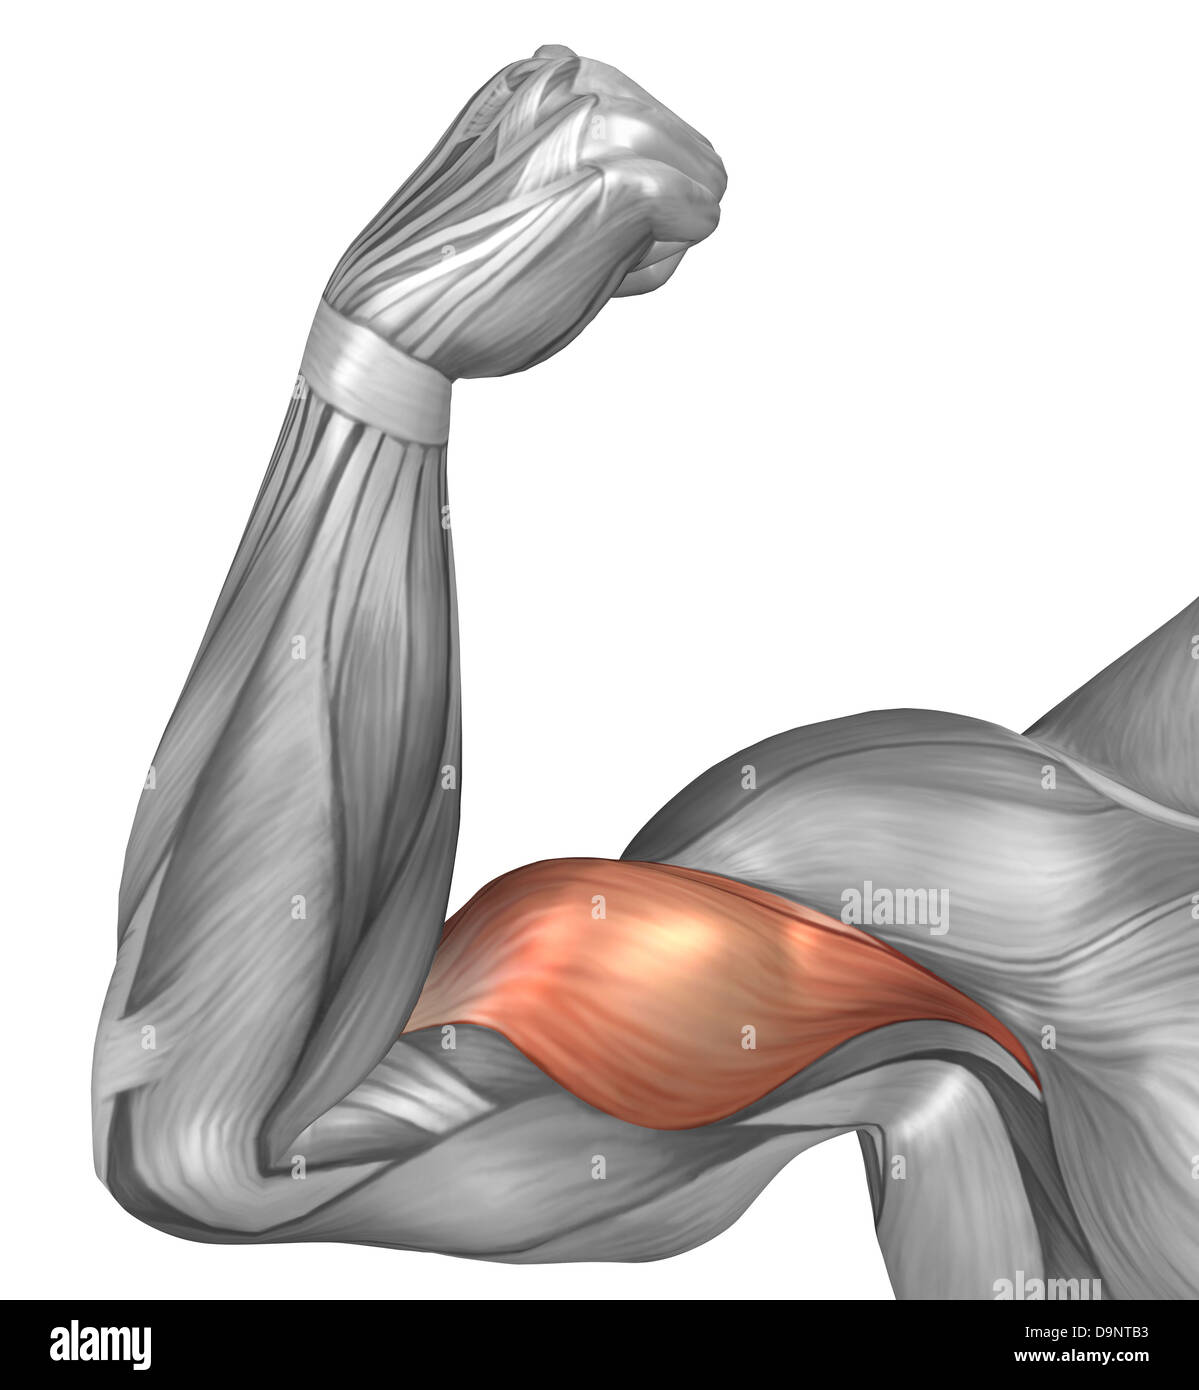 Illustration Of A Flexed Arm Showing Bicep Muscle Stock